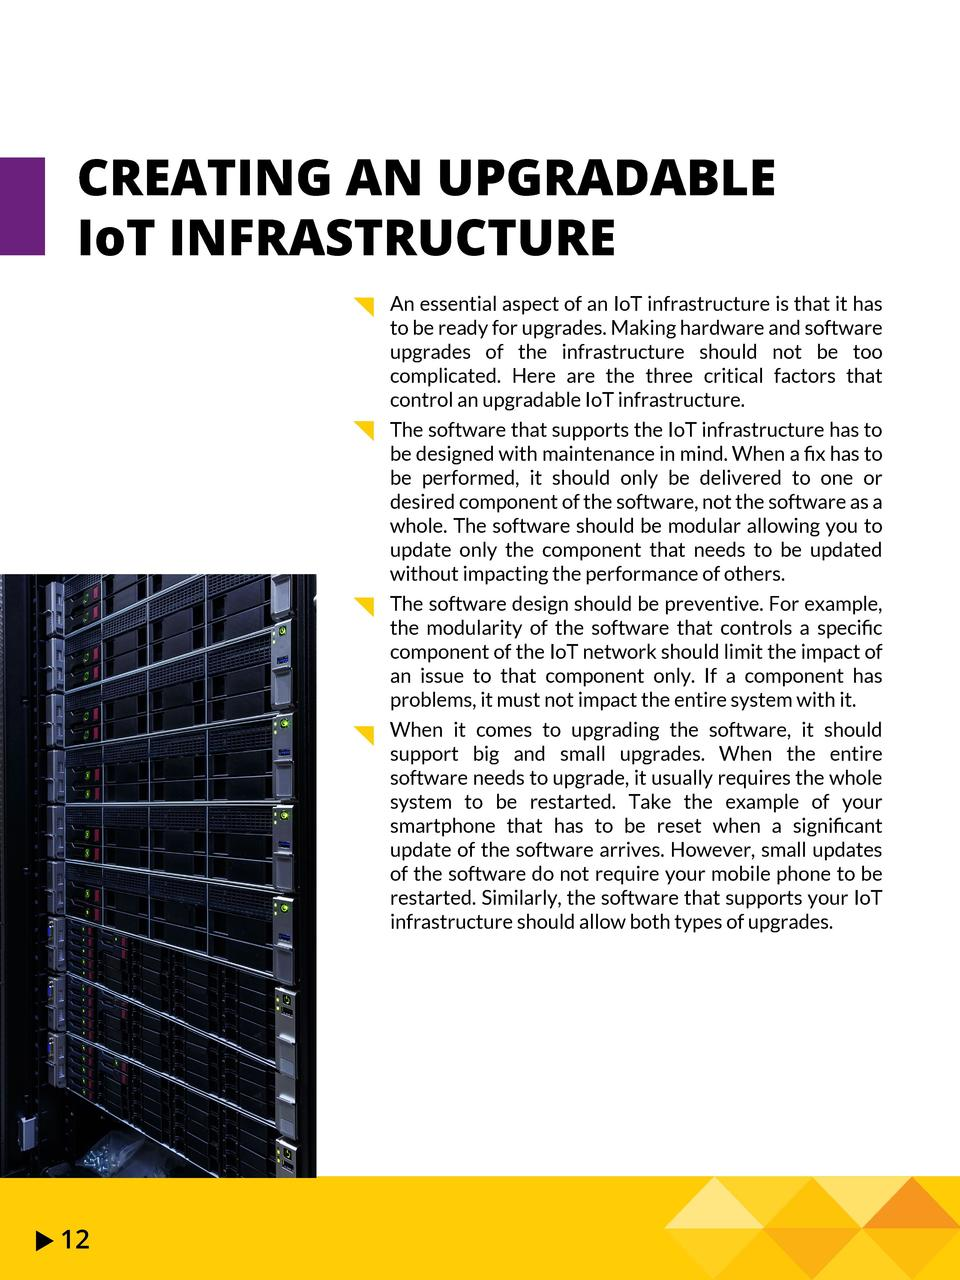 CREATING AN UPGRADABLE IoT INFRASTRUCTURE An essential aspect of an IoT infrastructure is that it has to be ready for upgr...